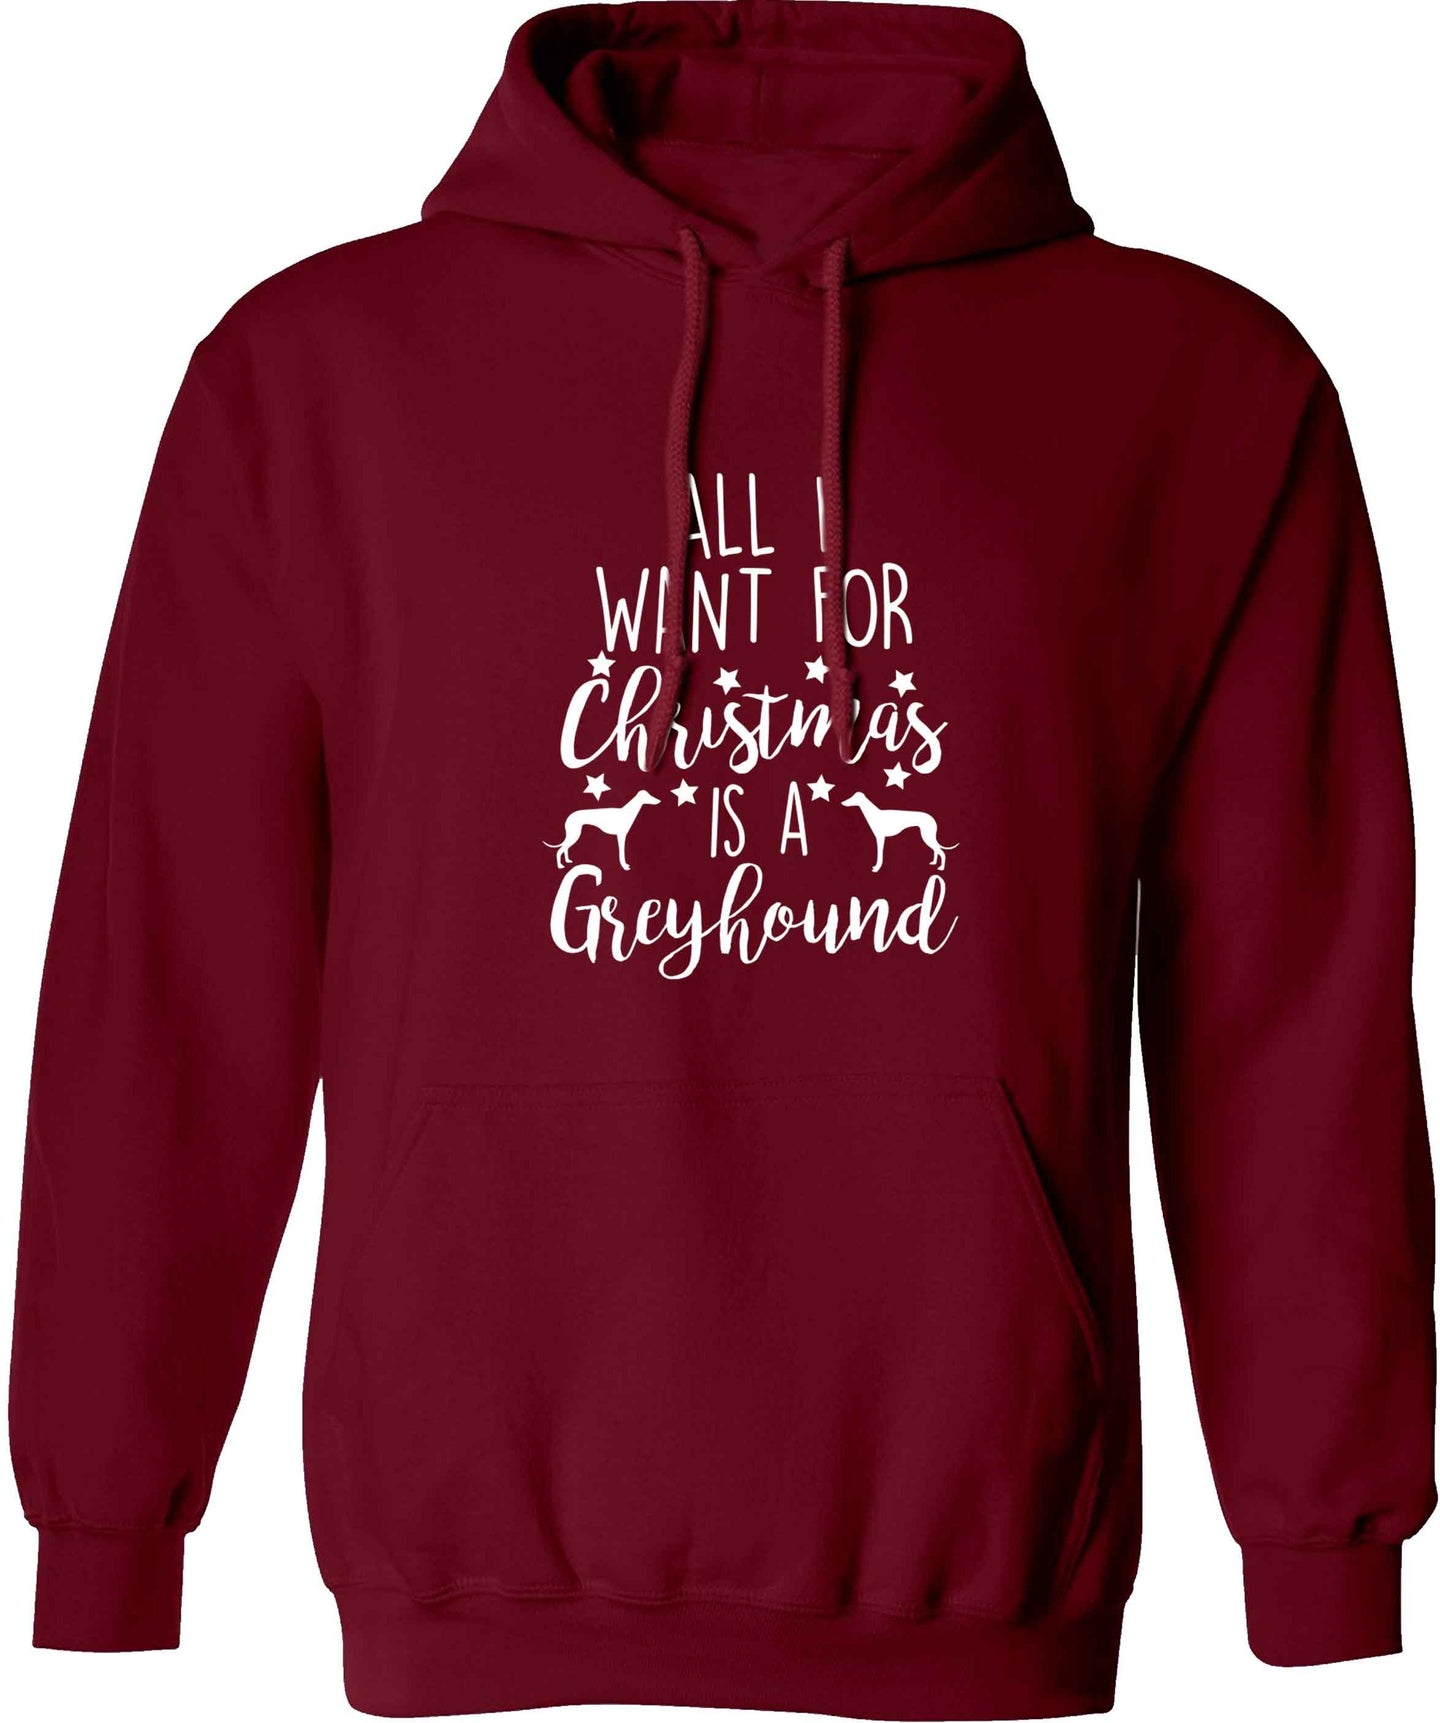 All I want for Christmas is a greyhound adults unisex maroon hoodie 2XL